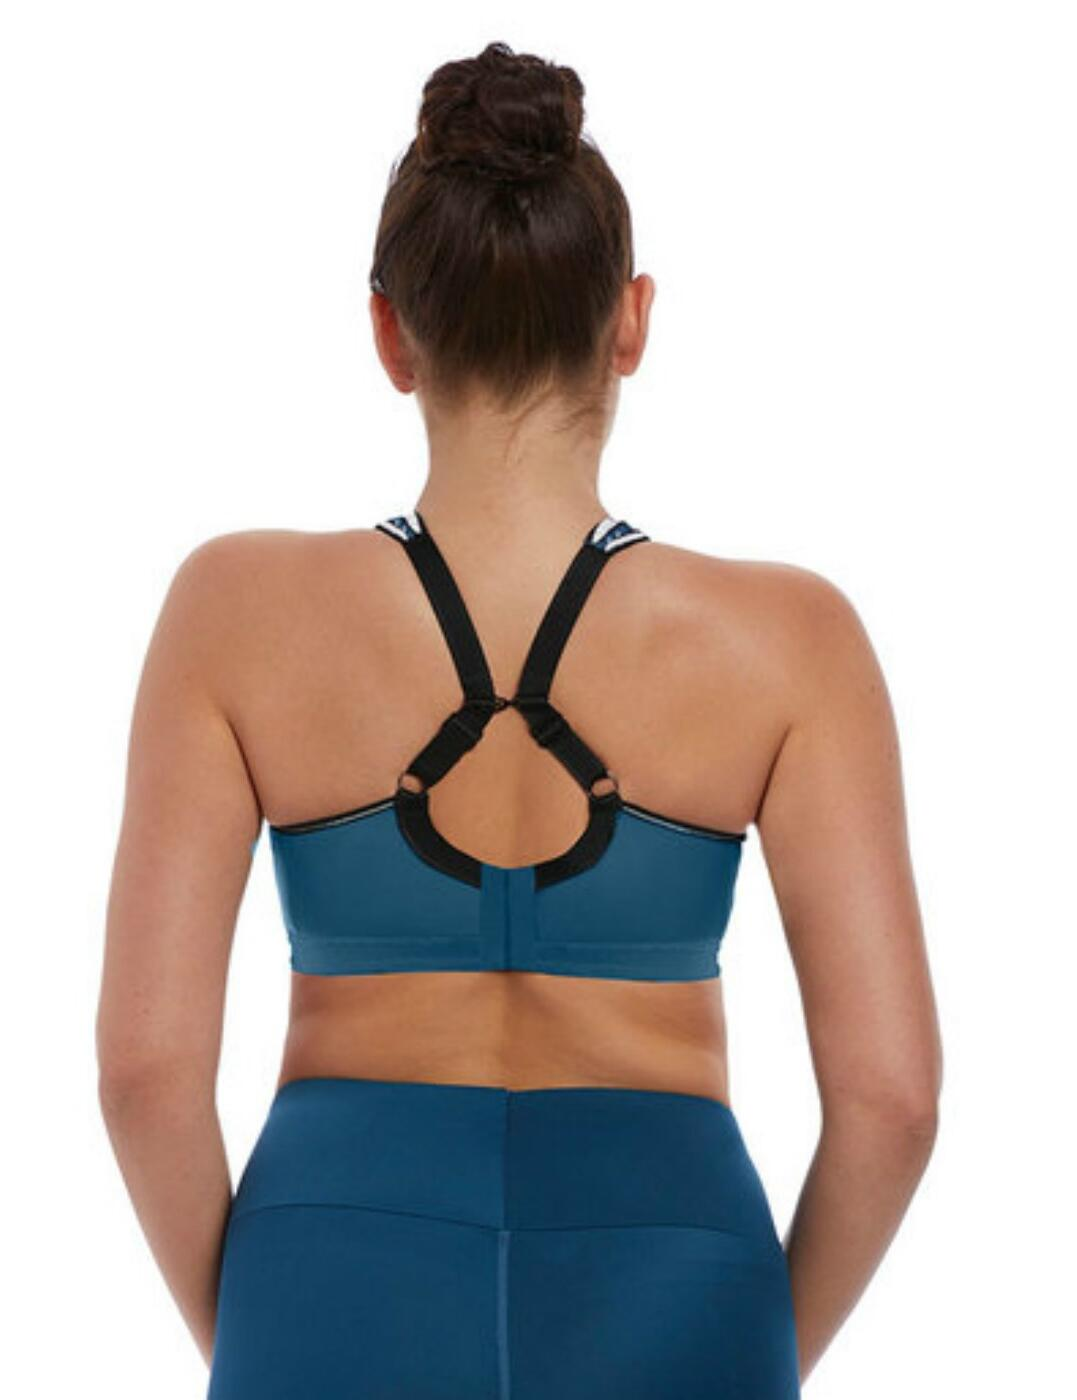 Freya-Active-Sports-Bra-Sonic-Underwired-Moulded-4892-Supportive-High-Impact thumbnail 12